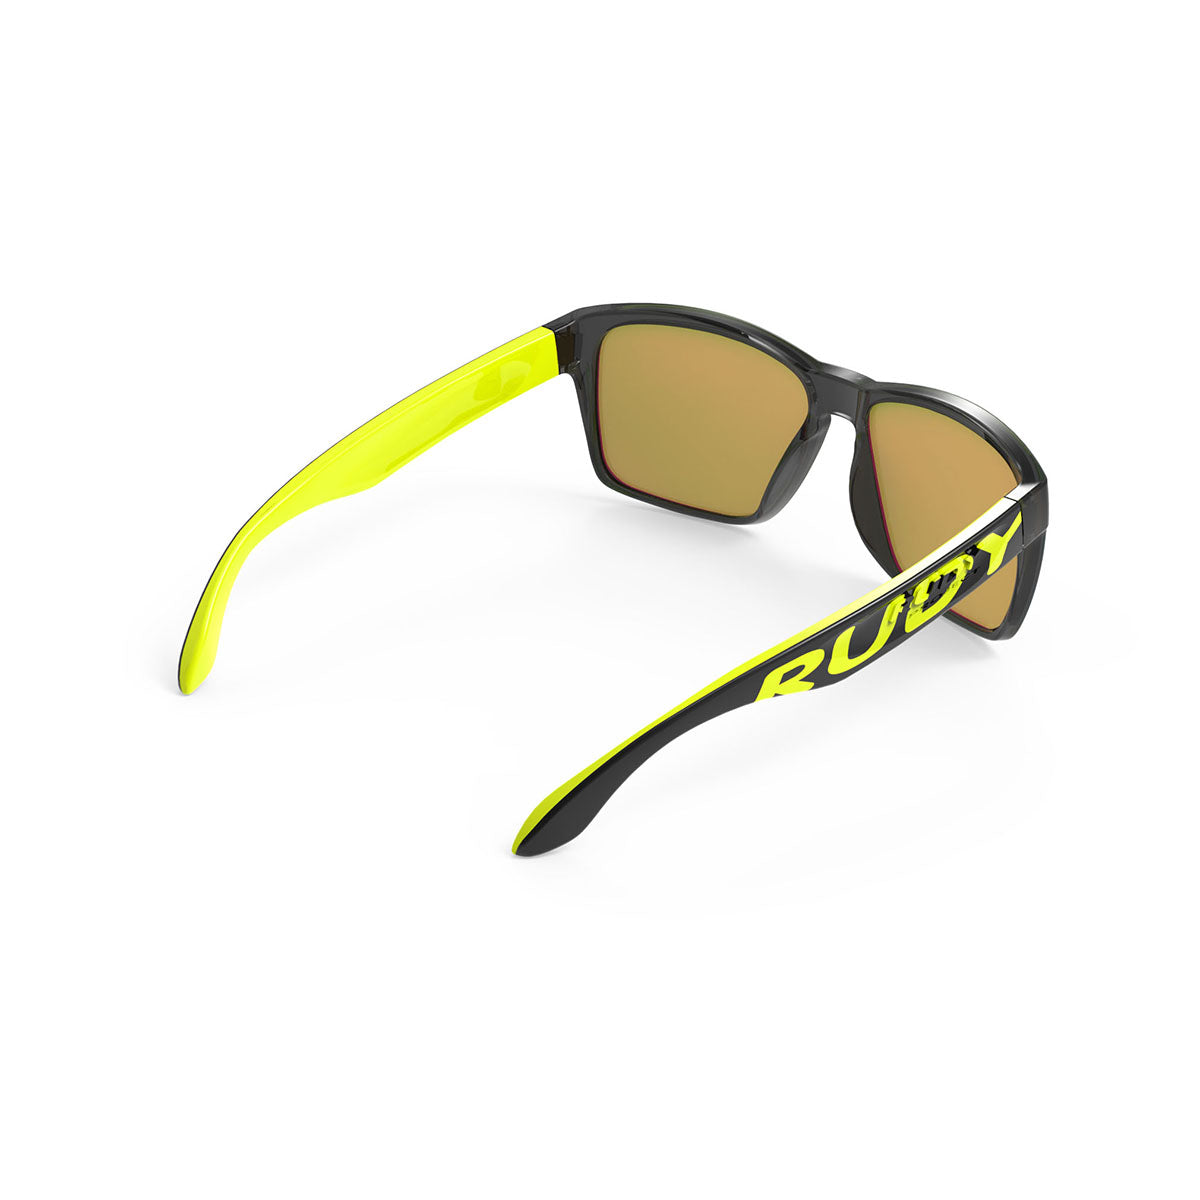 Rudy Project - Spinhawk - frame color: Crystal Ash Yellow - lens color: Multilaser LIme - Bumper Color:  - photo angle: Top Back Angle Variant Hover Image